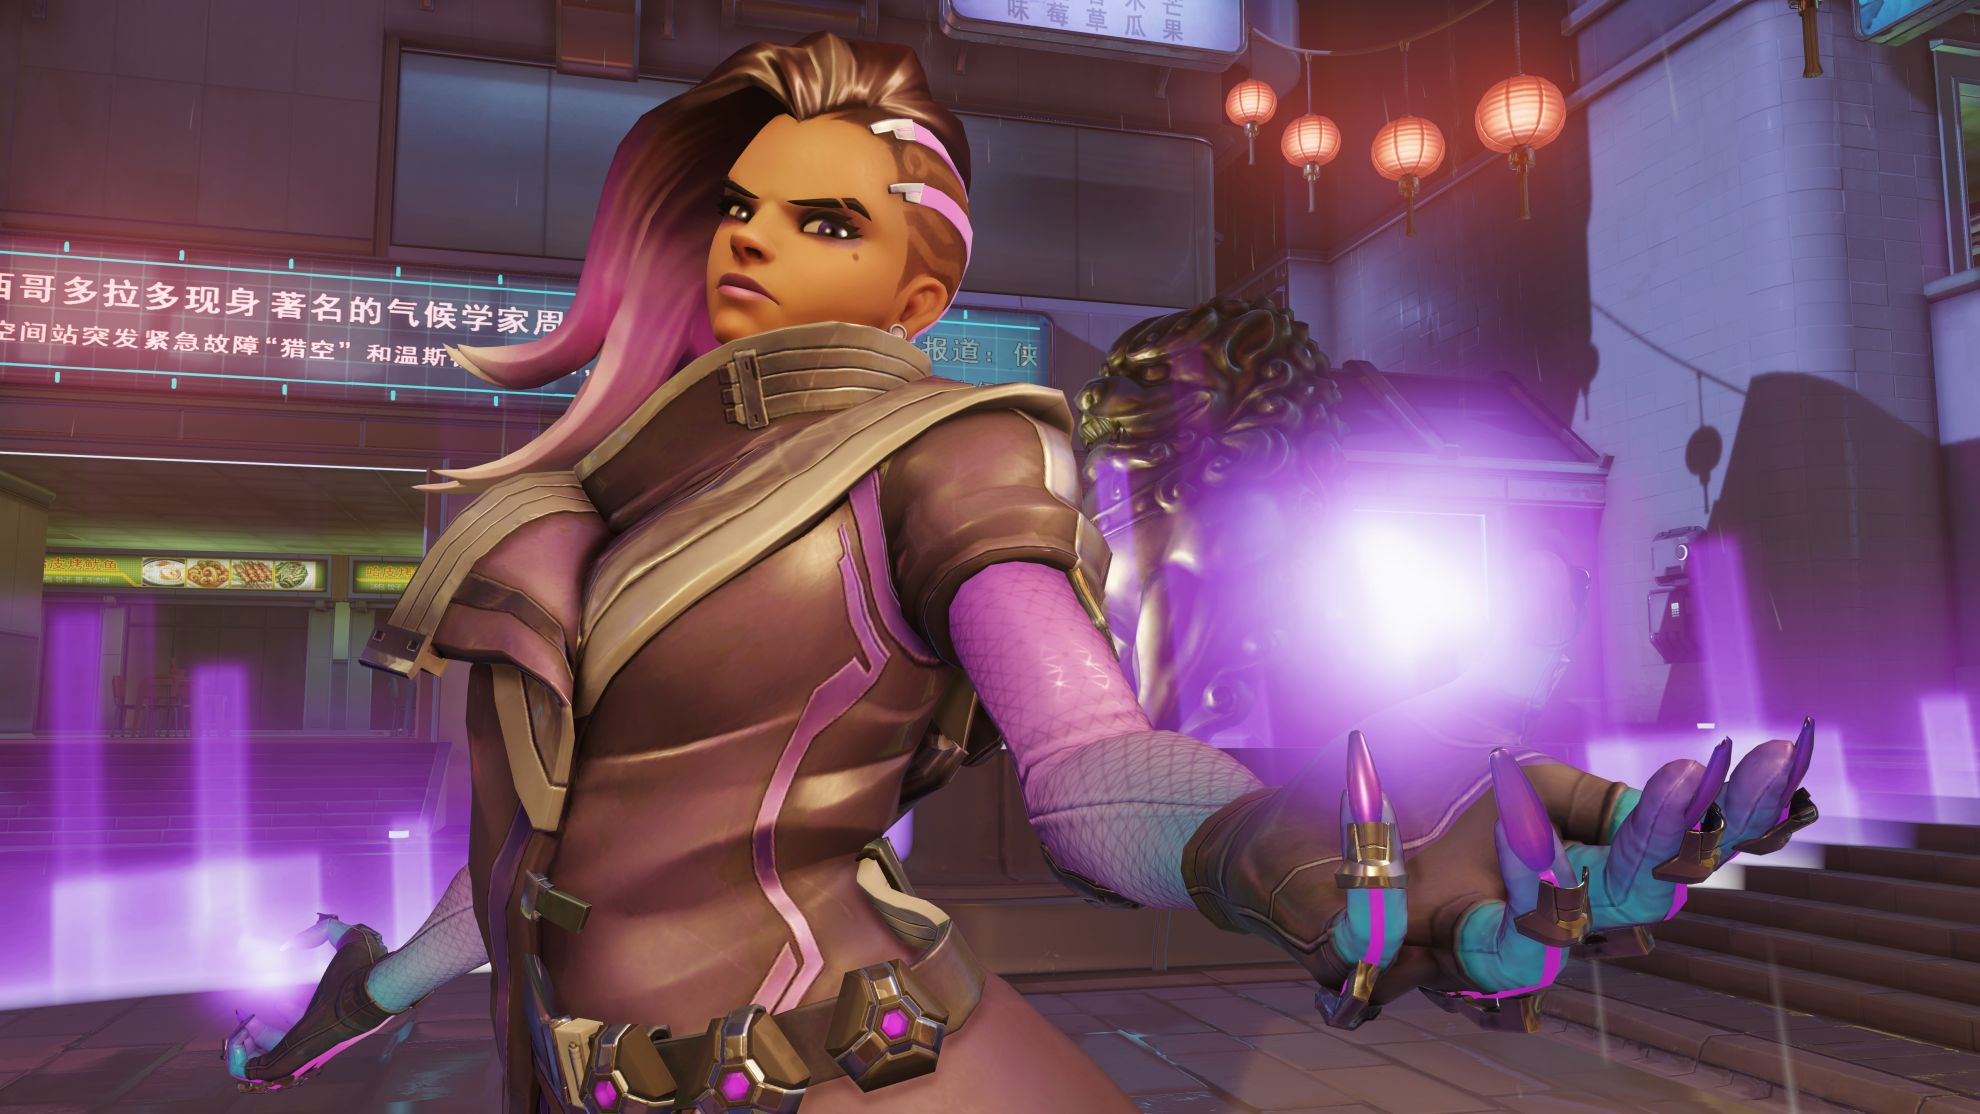 Overwatchs Sombra Comes To Street Fighter 5 Courtesy Of A New Mod VG247